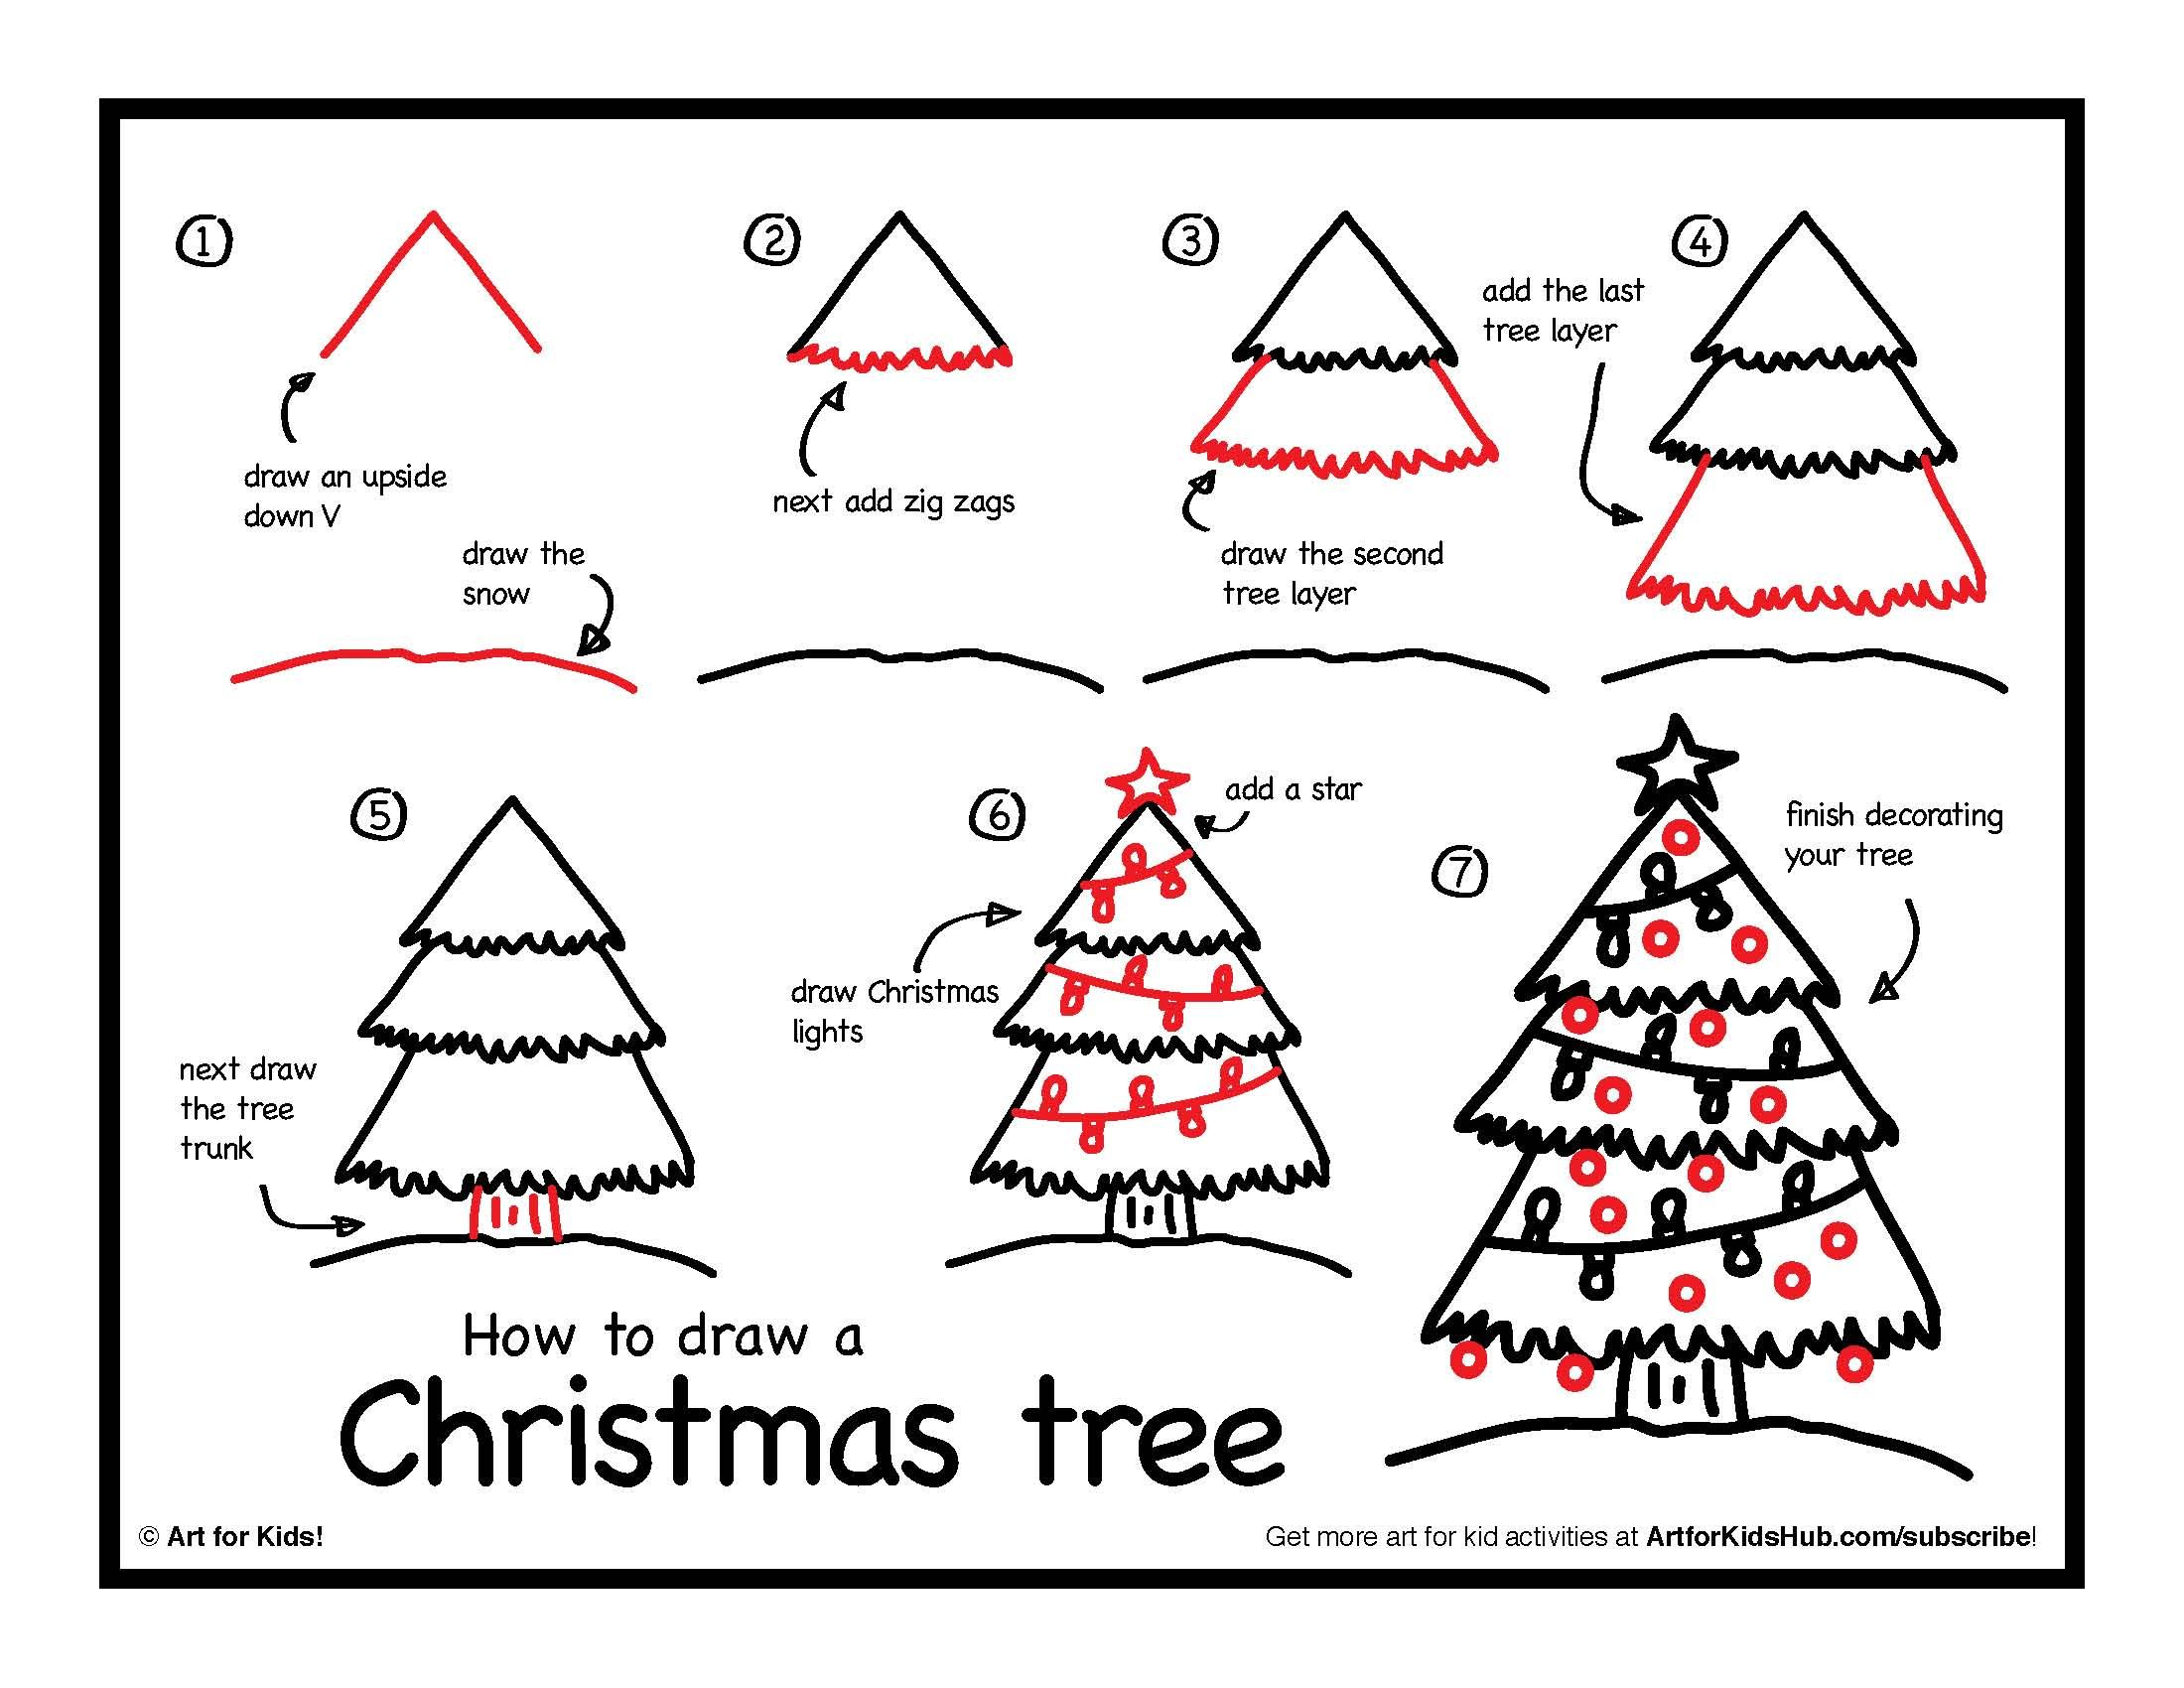 How To Draw A Christmas Tree - Art For Kids Hub ...